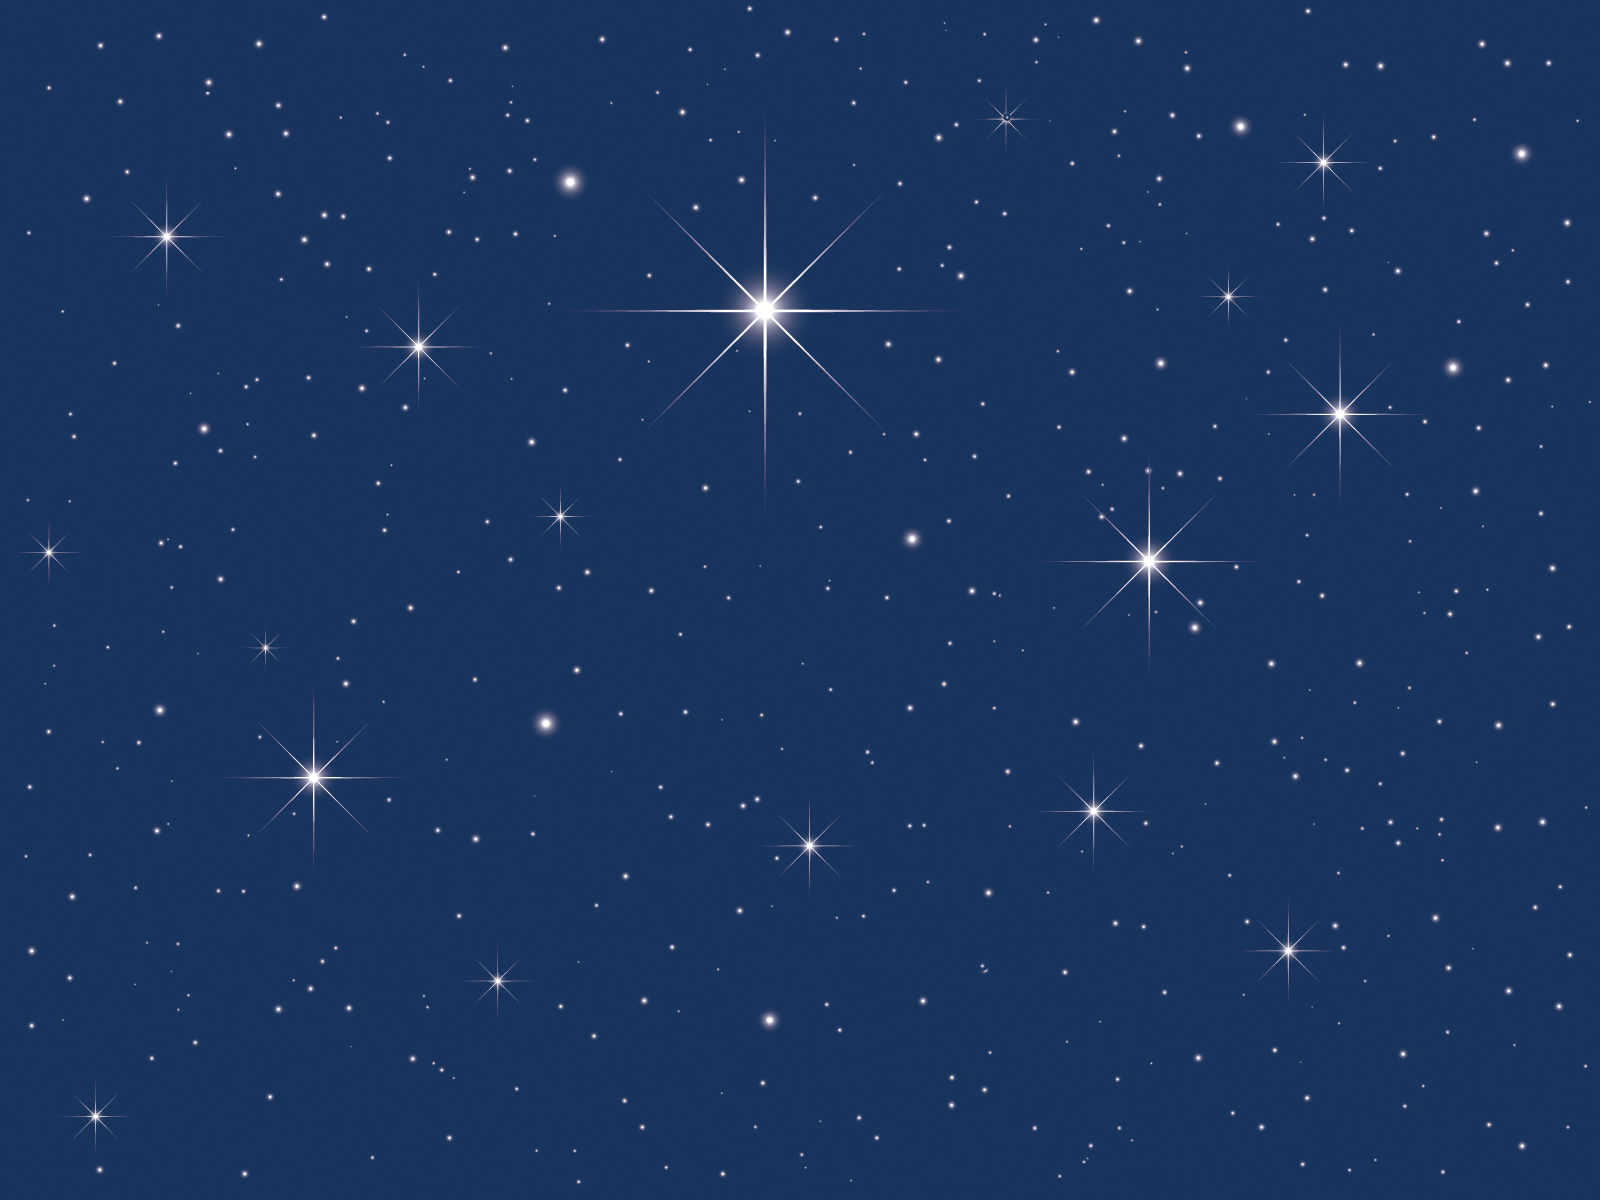 Starry sky clipart free royalty free Starry night sky clipart - Clip Art Library royalty free